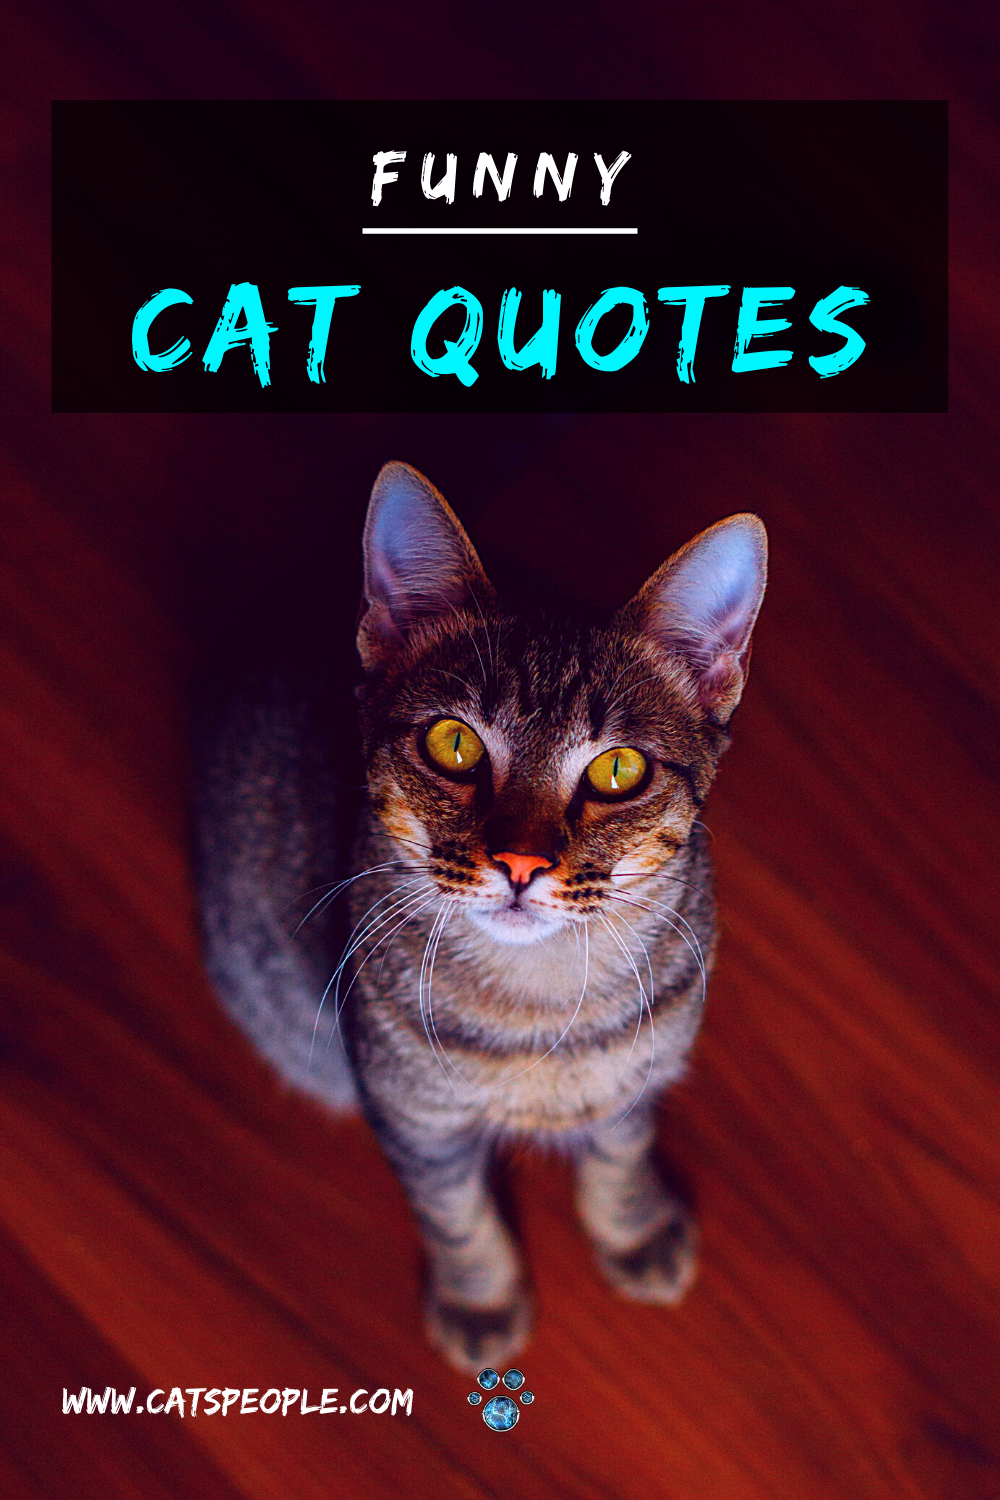 20 Funny Cat Quotes In 2020 Cat Quotes Funny Cat Quotes Funny Cats